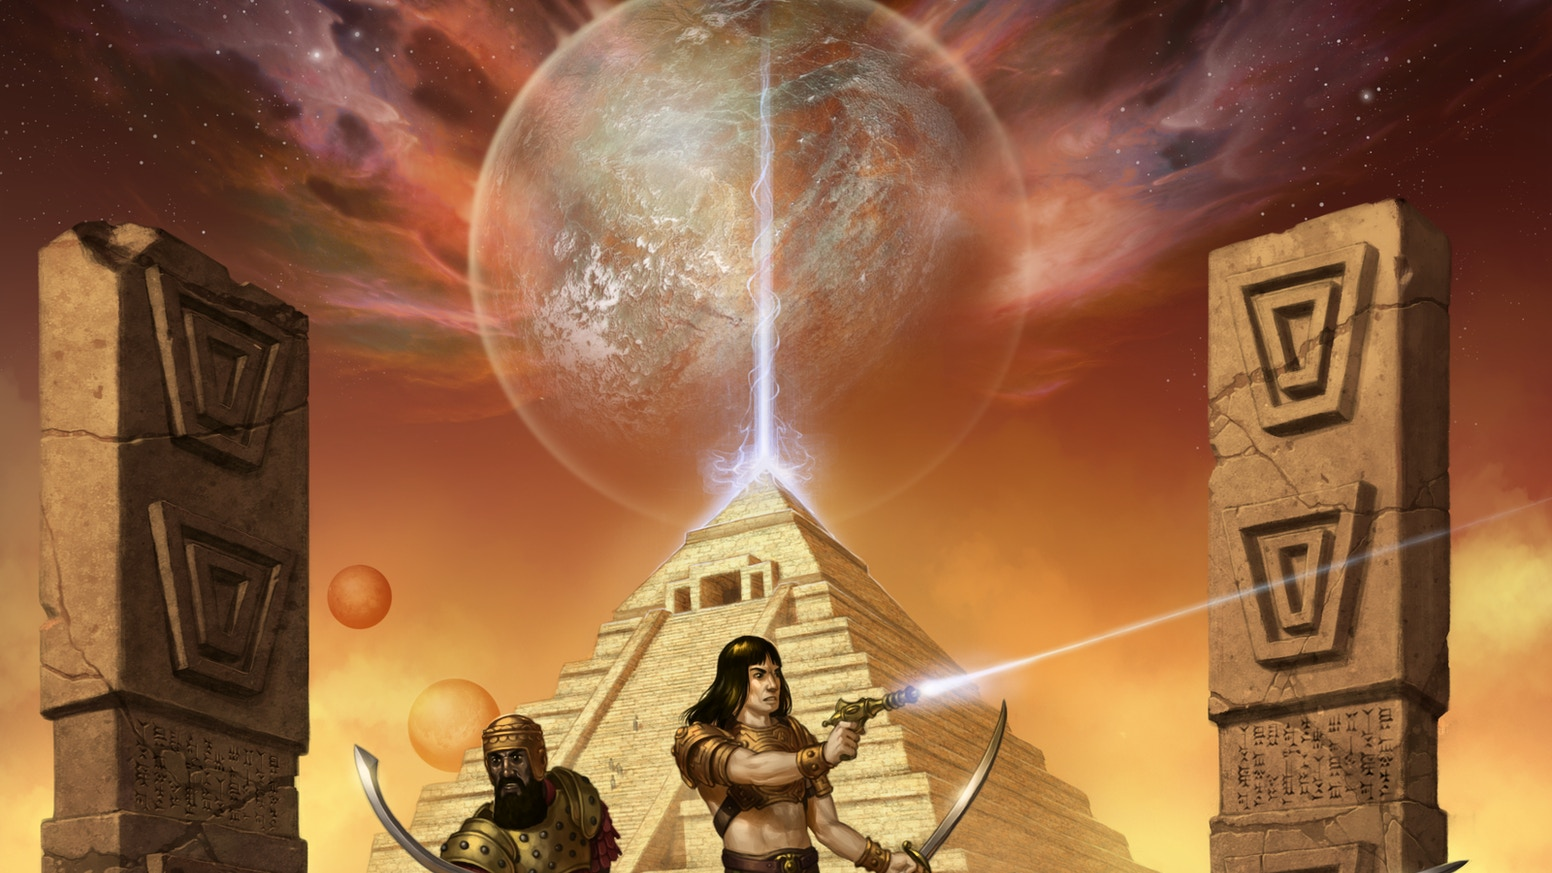 ANKUR-kingdom of the gods is a new sci-fi, table top role playing game based on Sumerian mythology, and the ancient alien theory.